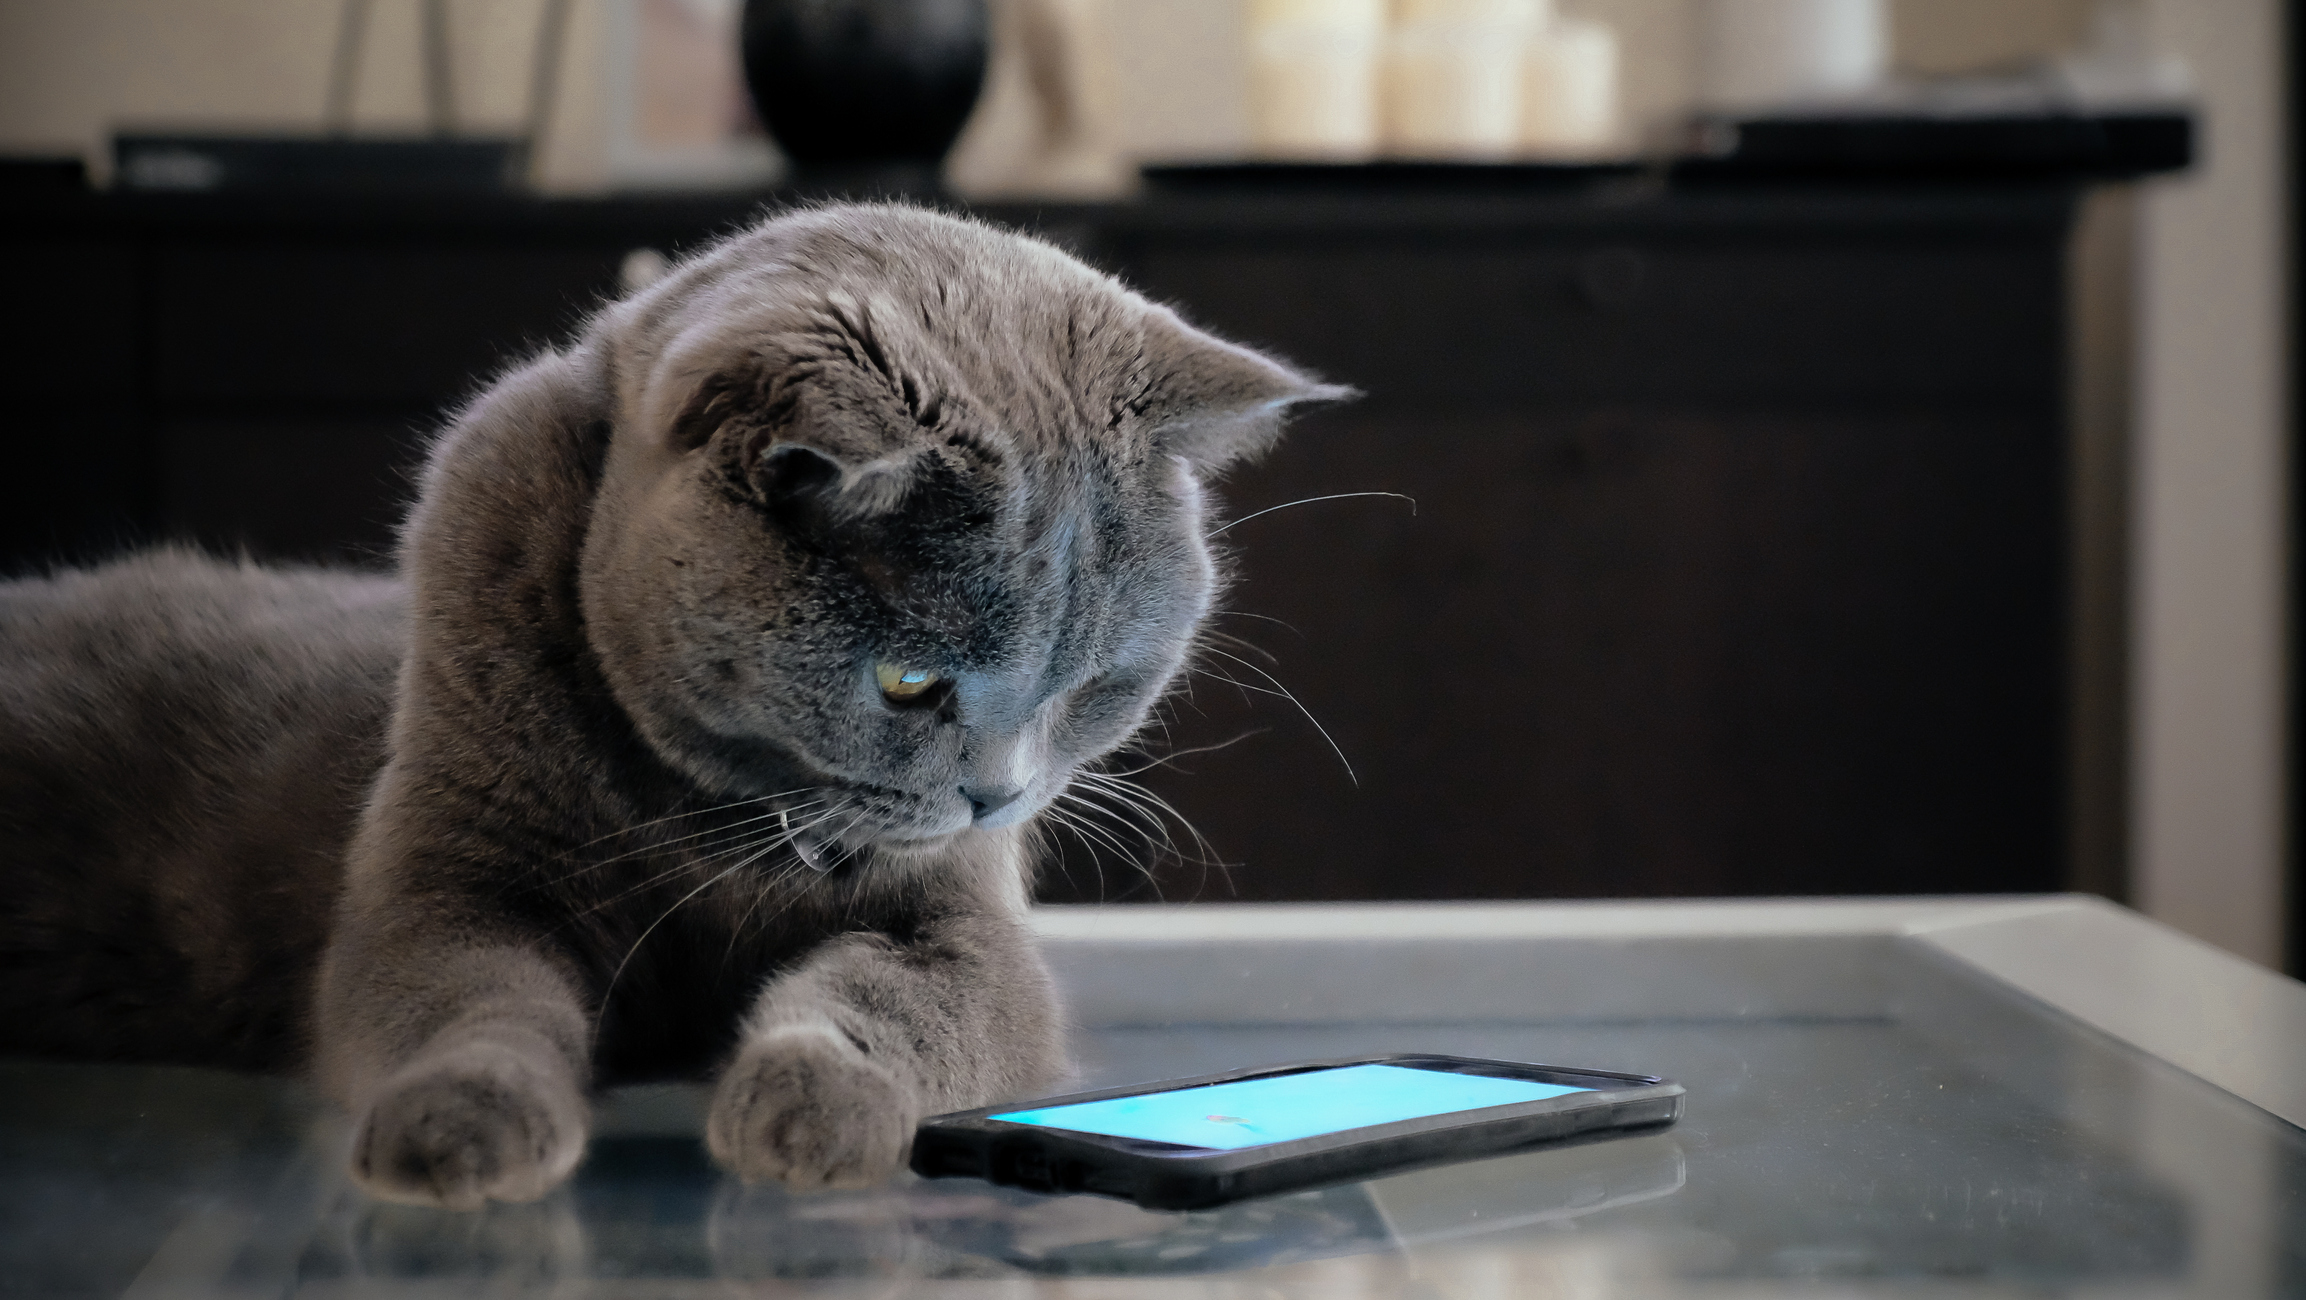 Can Cats See Phone Screens? | Healthy Paws Pet Insurance